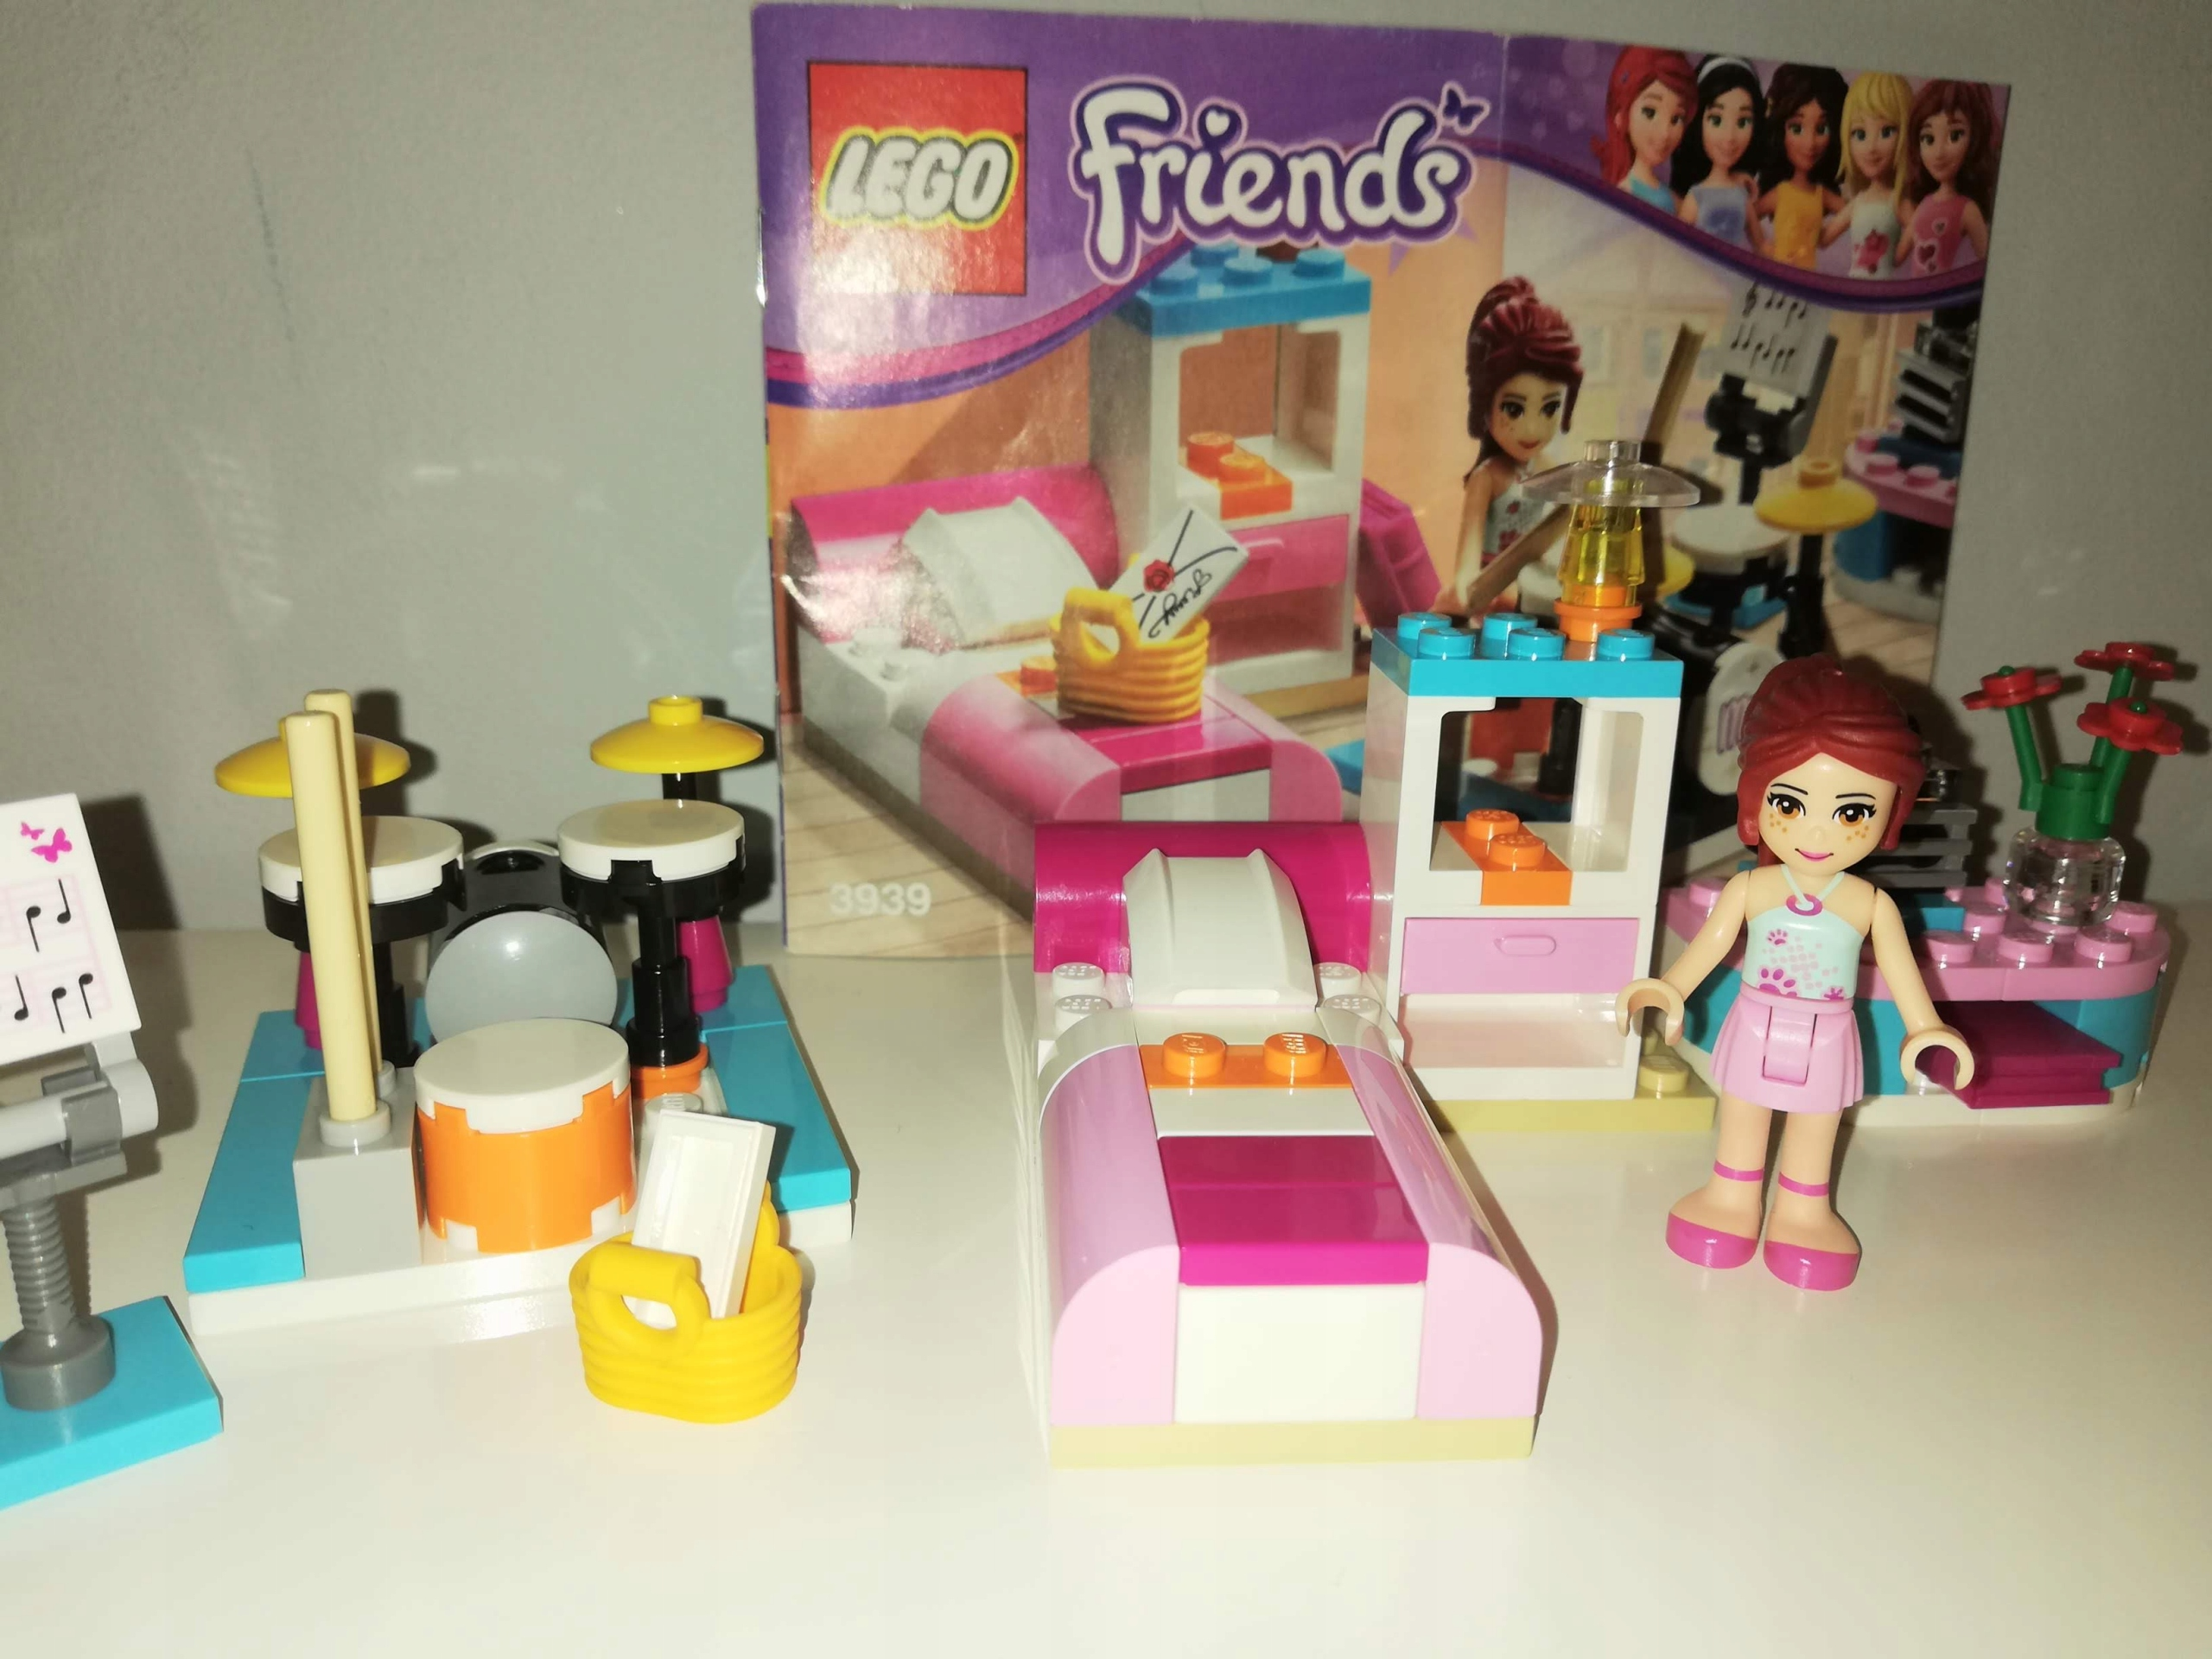 Lego Friends Pokoj Mii